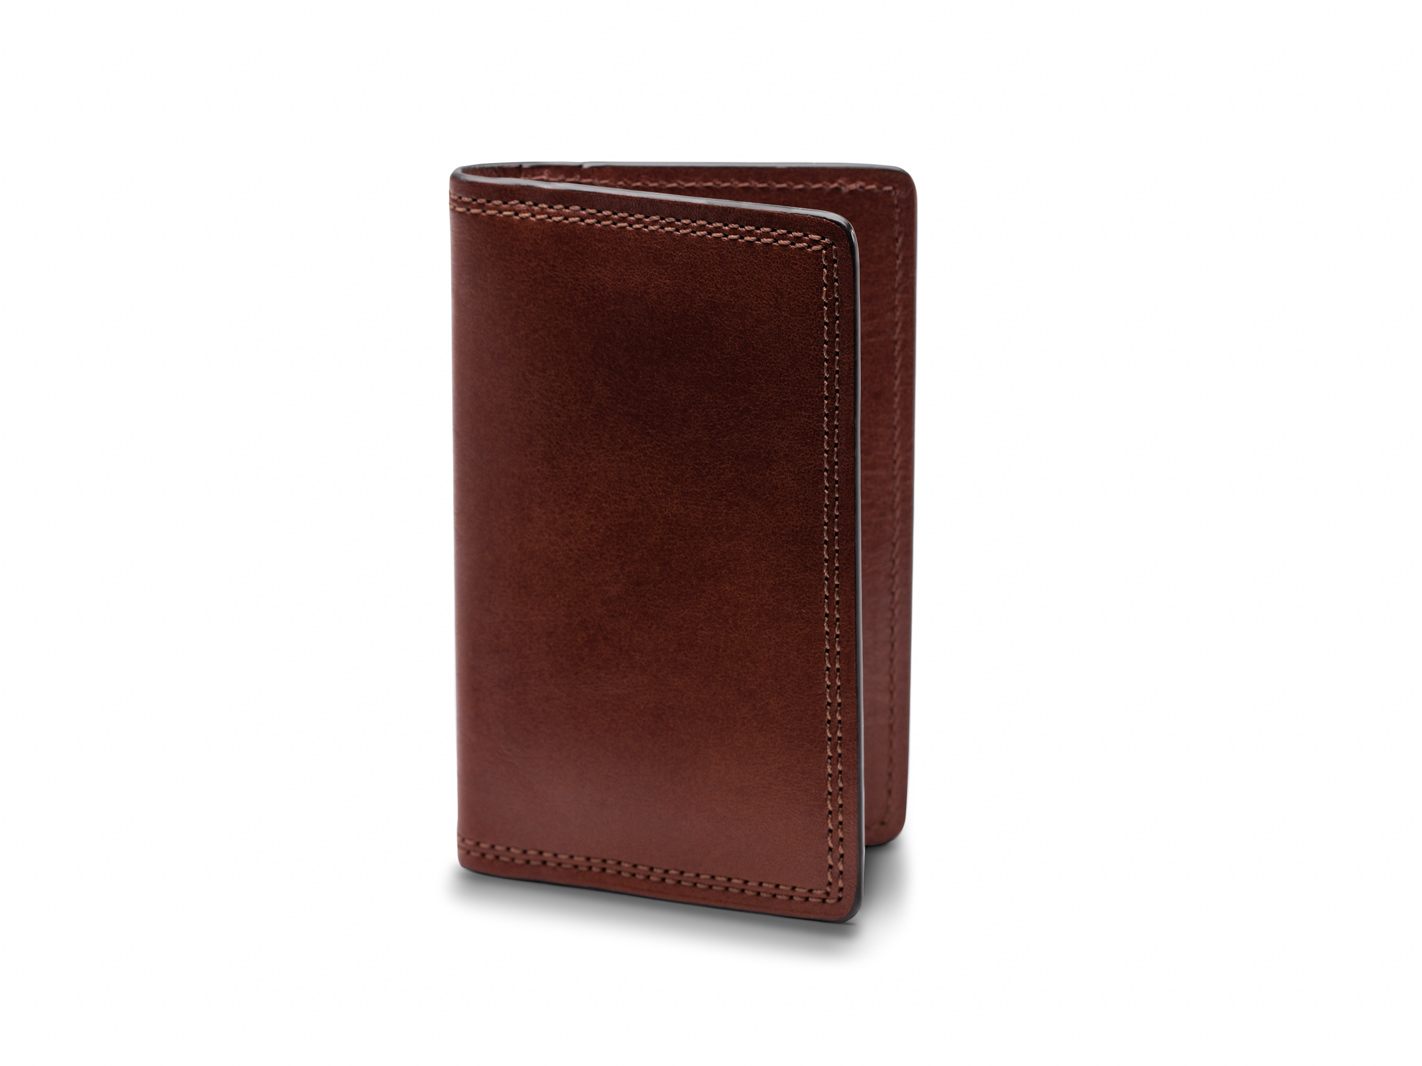 Calling Card Case-218 Dark Brown - 218 Dark Brown